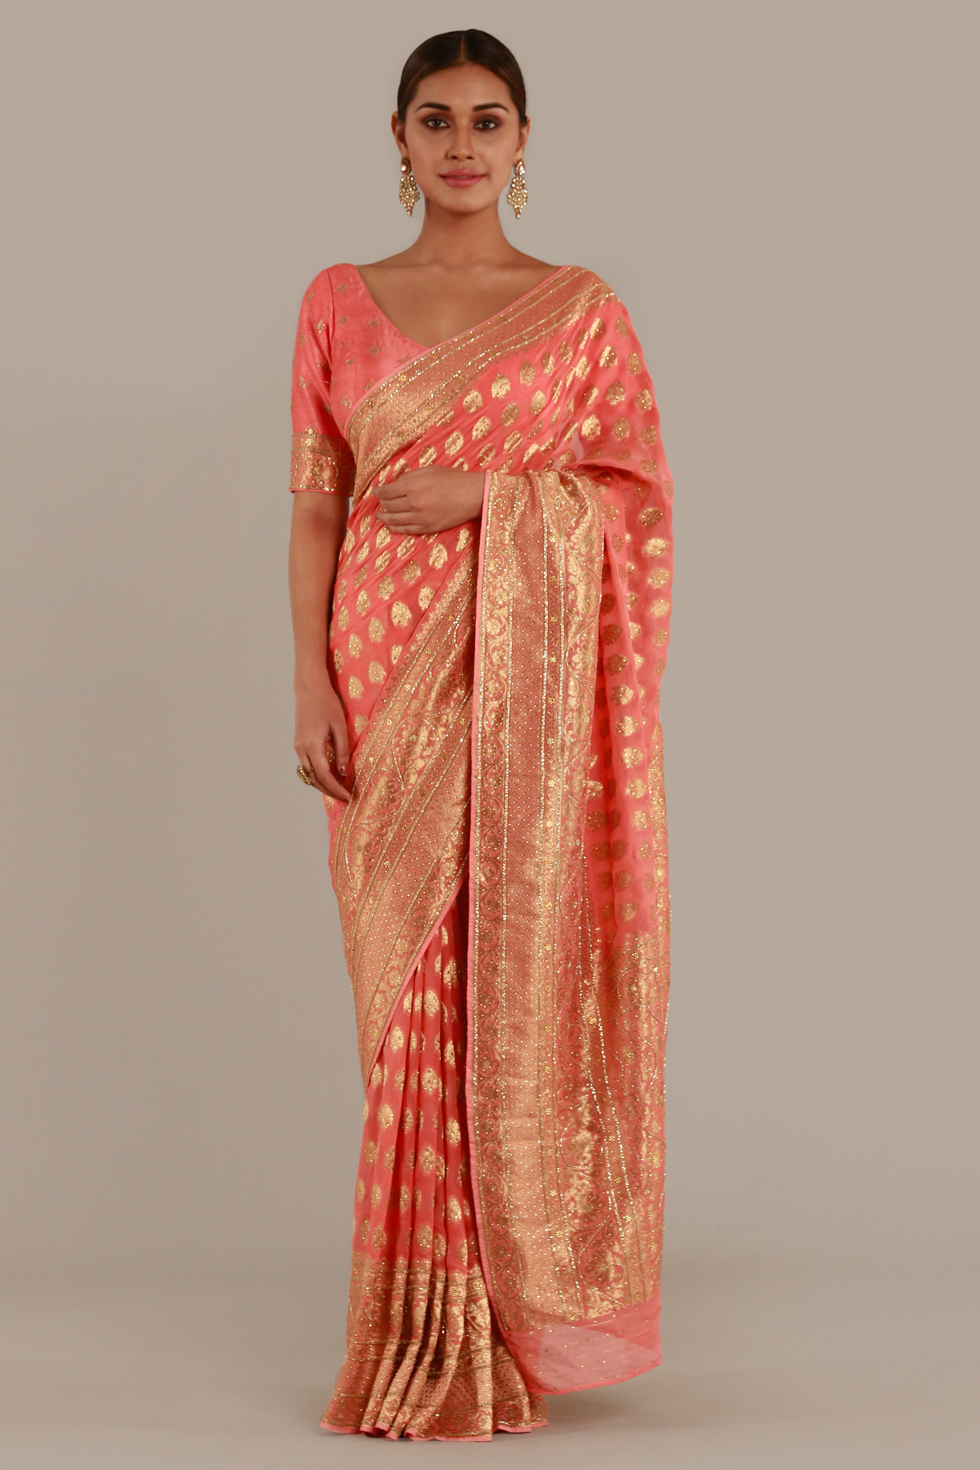 Peach pink classic saree with gold butis, embellishments and matching blouse